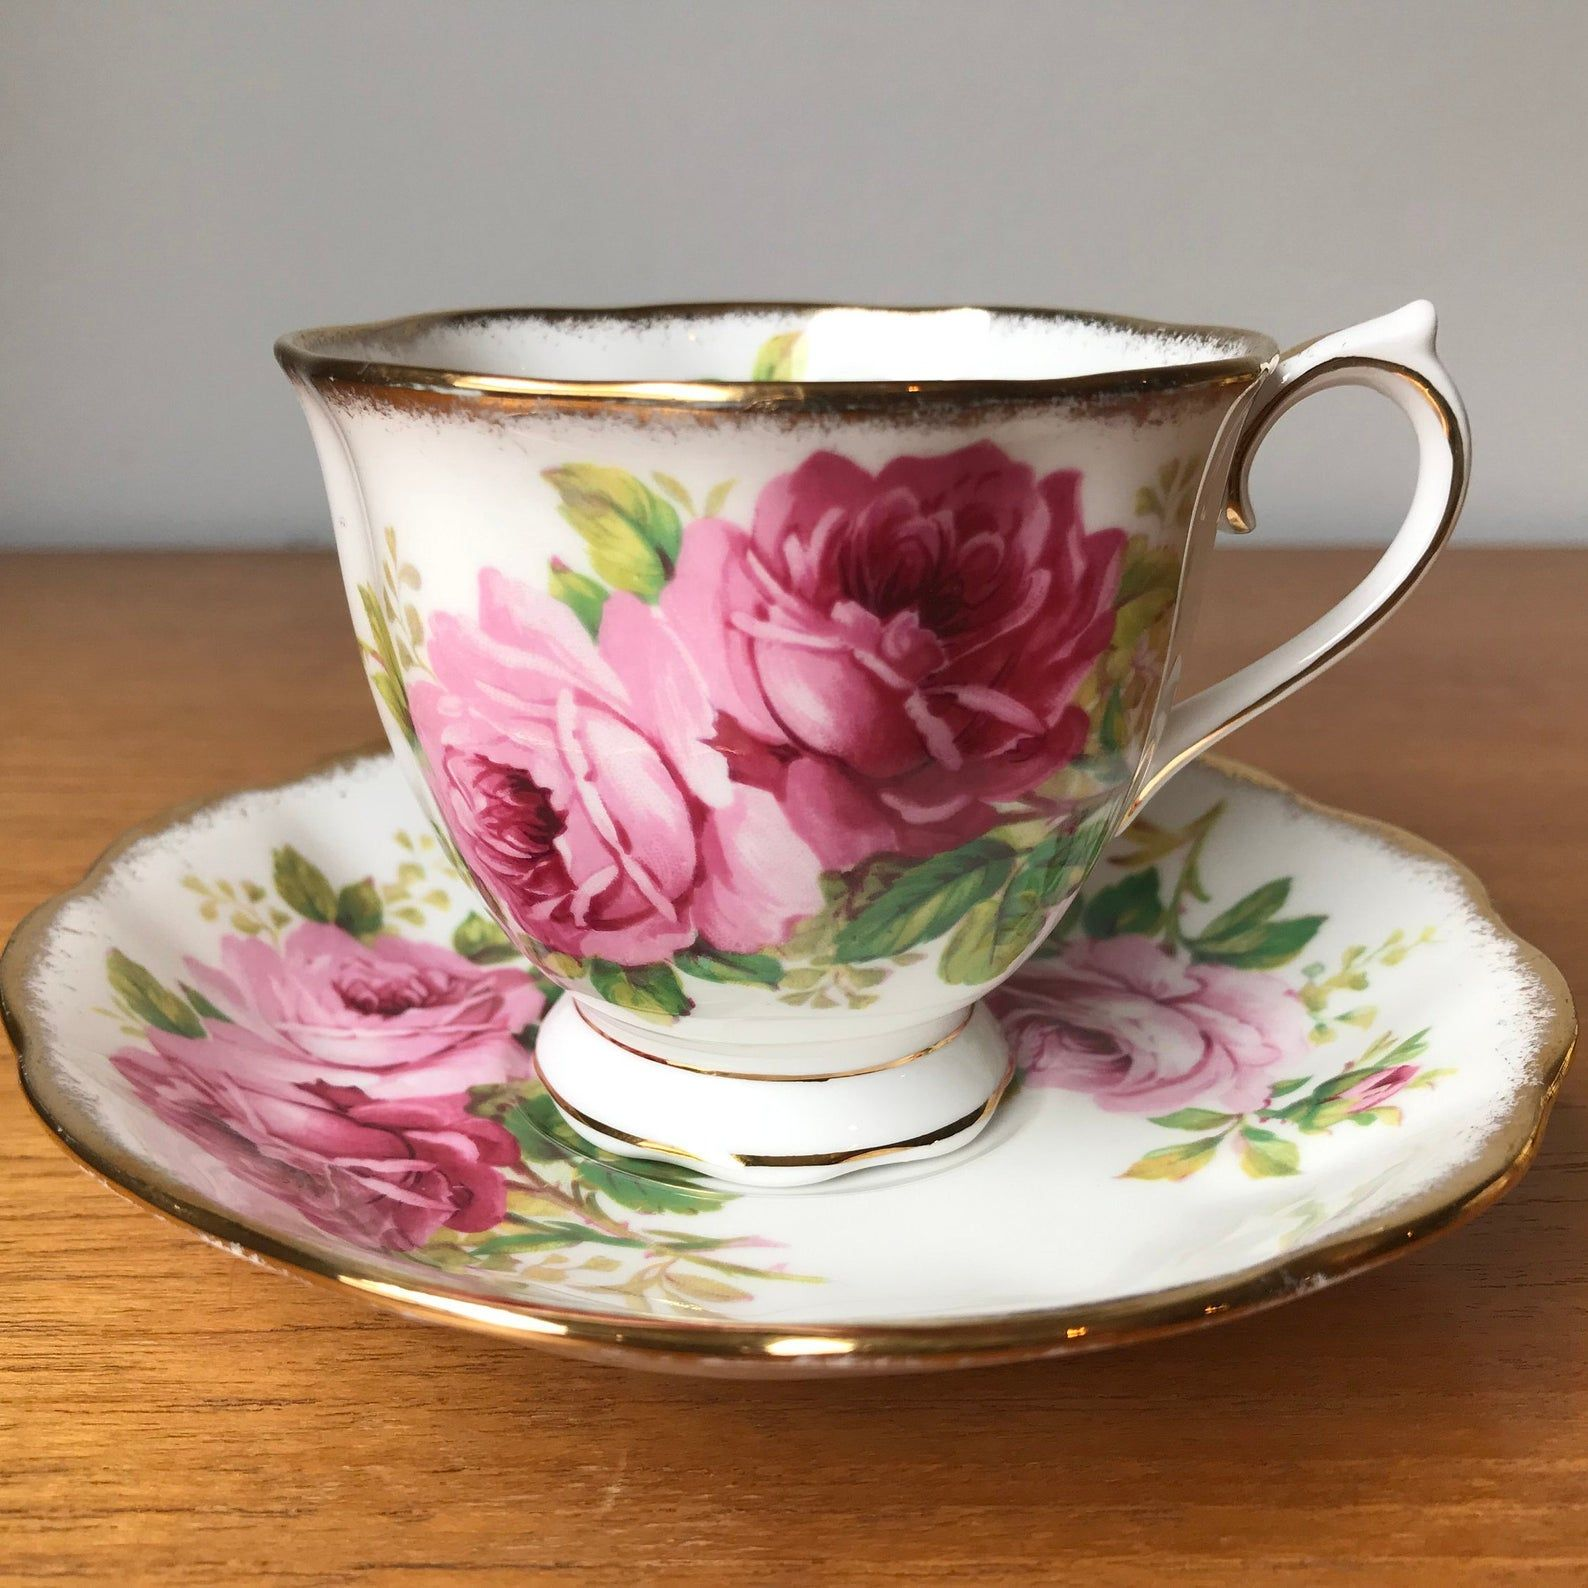 """Royal Albert """"American Beauty"""" Pink Rose Vintage Teacup and Saucer, Floral Tea Cup and Saucer, English China"""